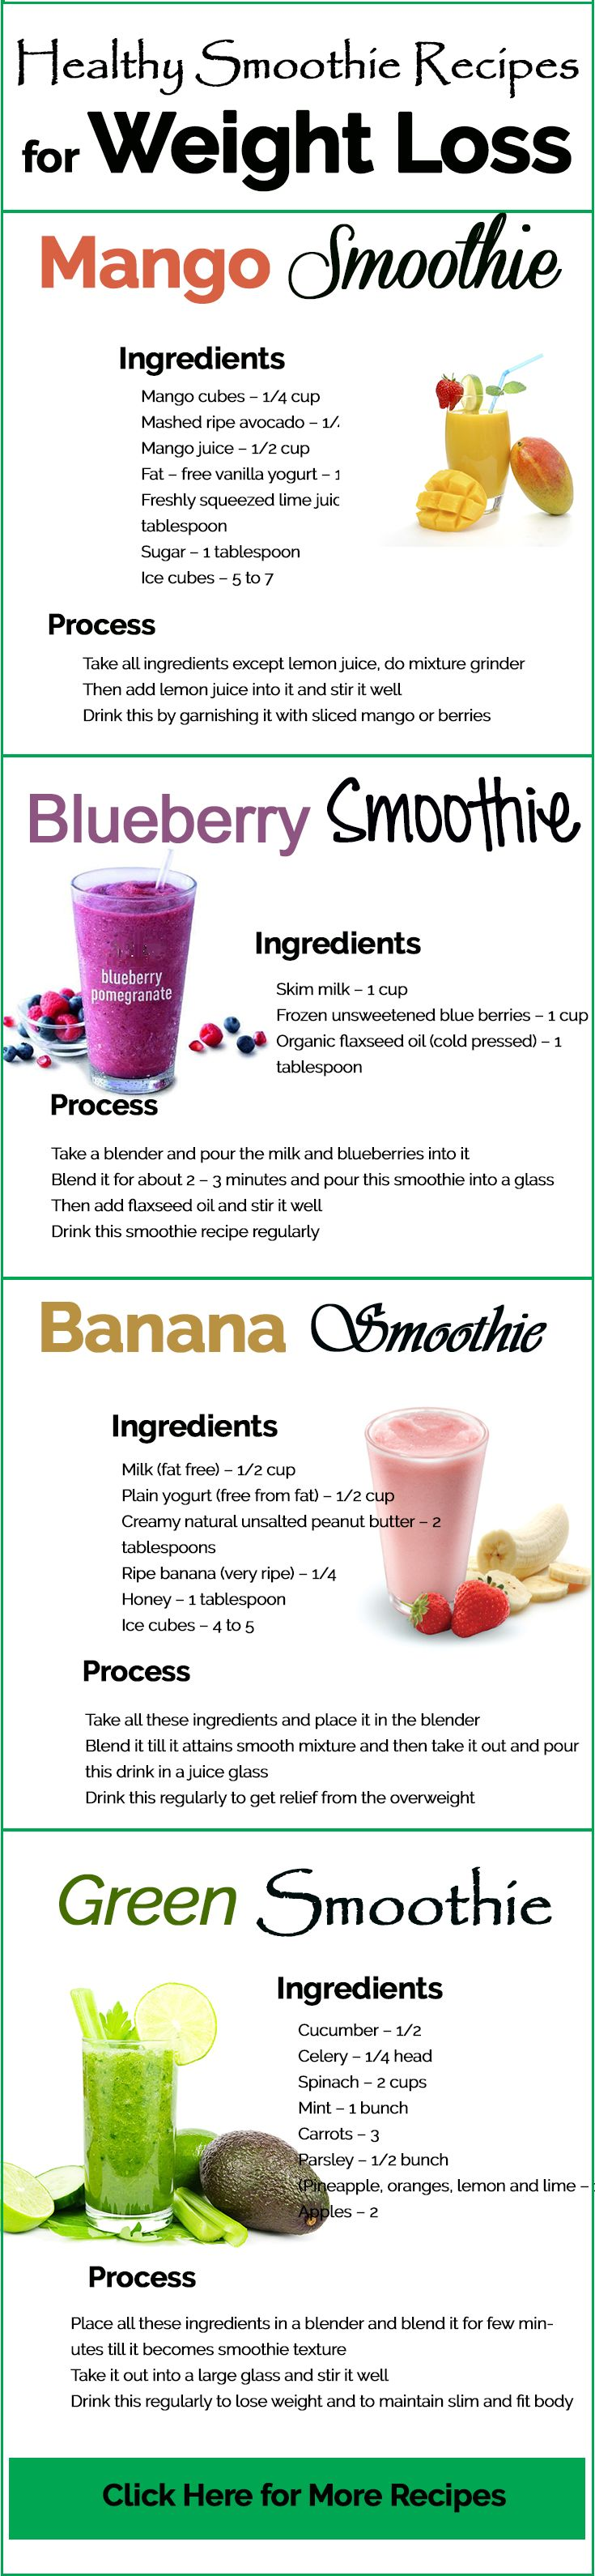 Healthy Smoothie Recipes for Weight Loss // In need of a detox? 10% off using our discount code 'Pin10' at www.ThinTea.com.au